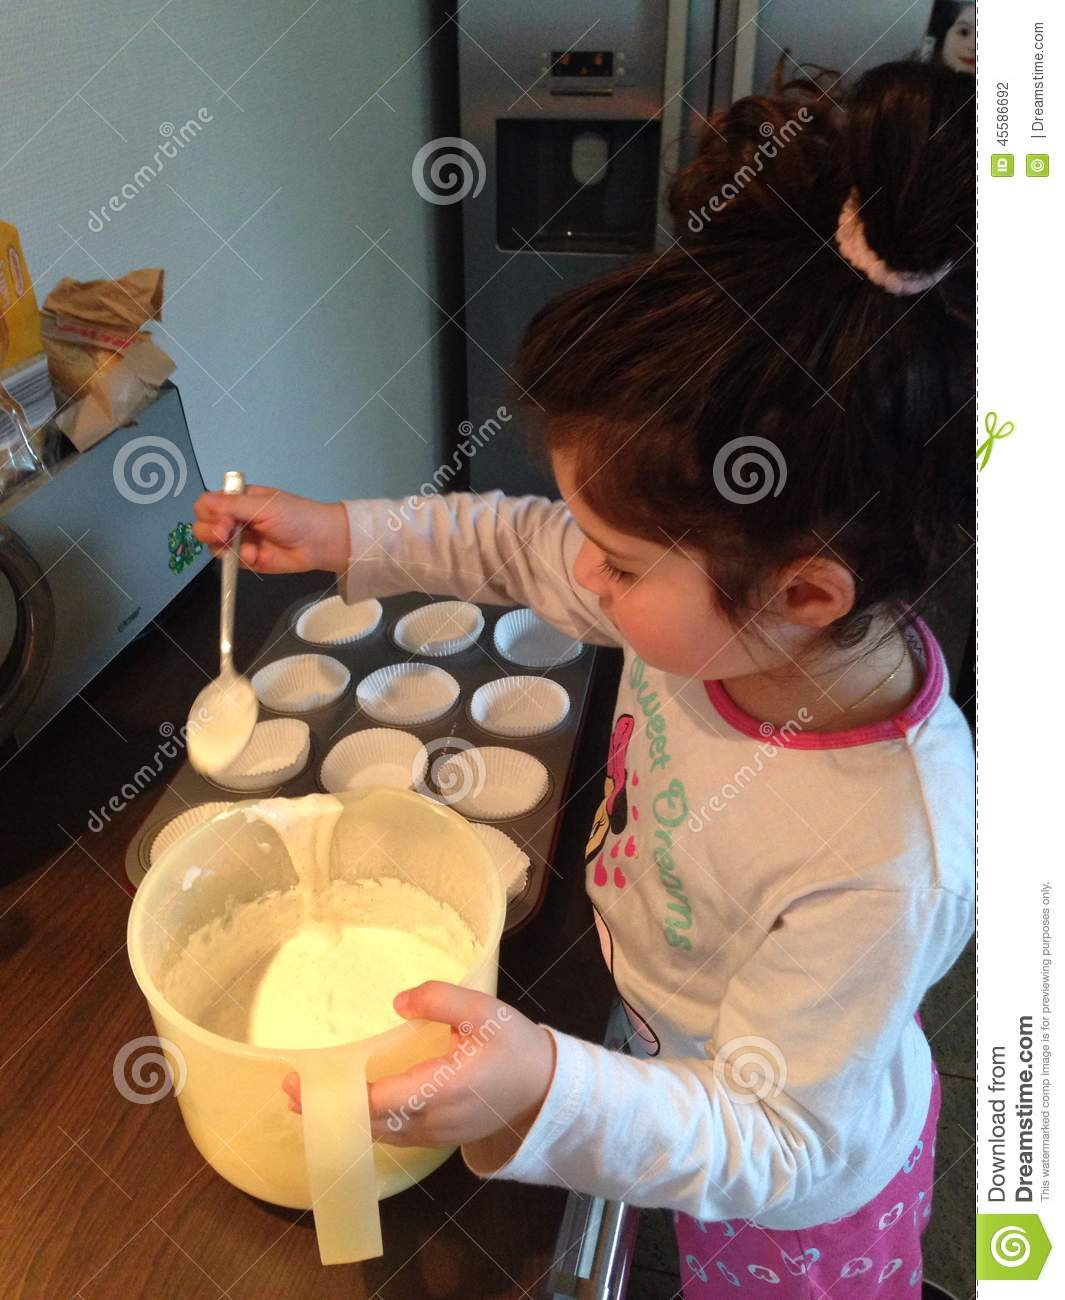 Muffins Kinder Lecker Backen Cupcake Editorial Photography Image Of Backen 45586692